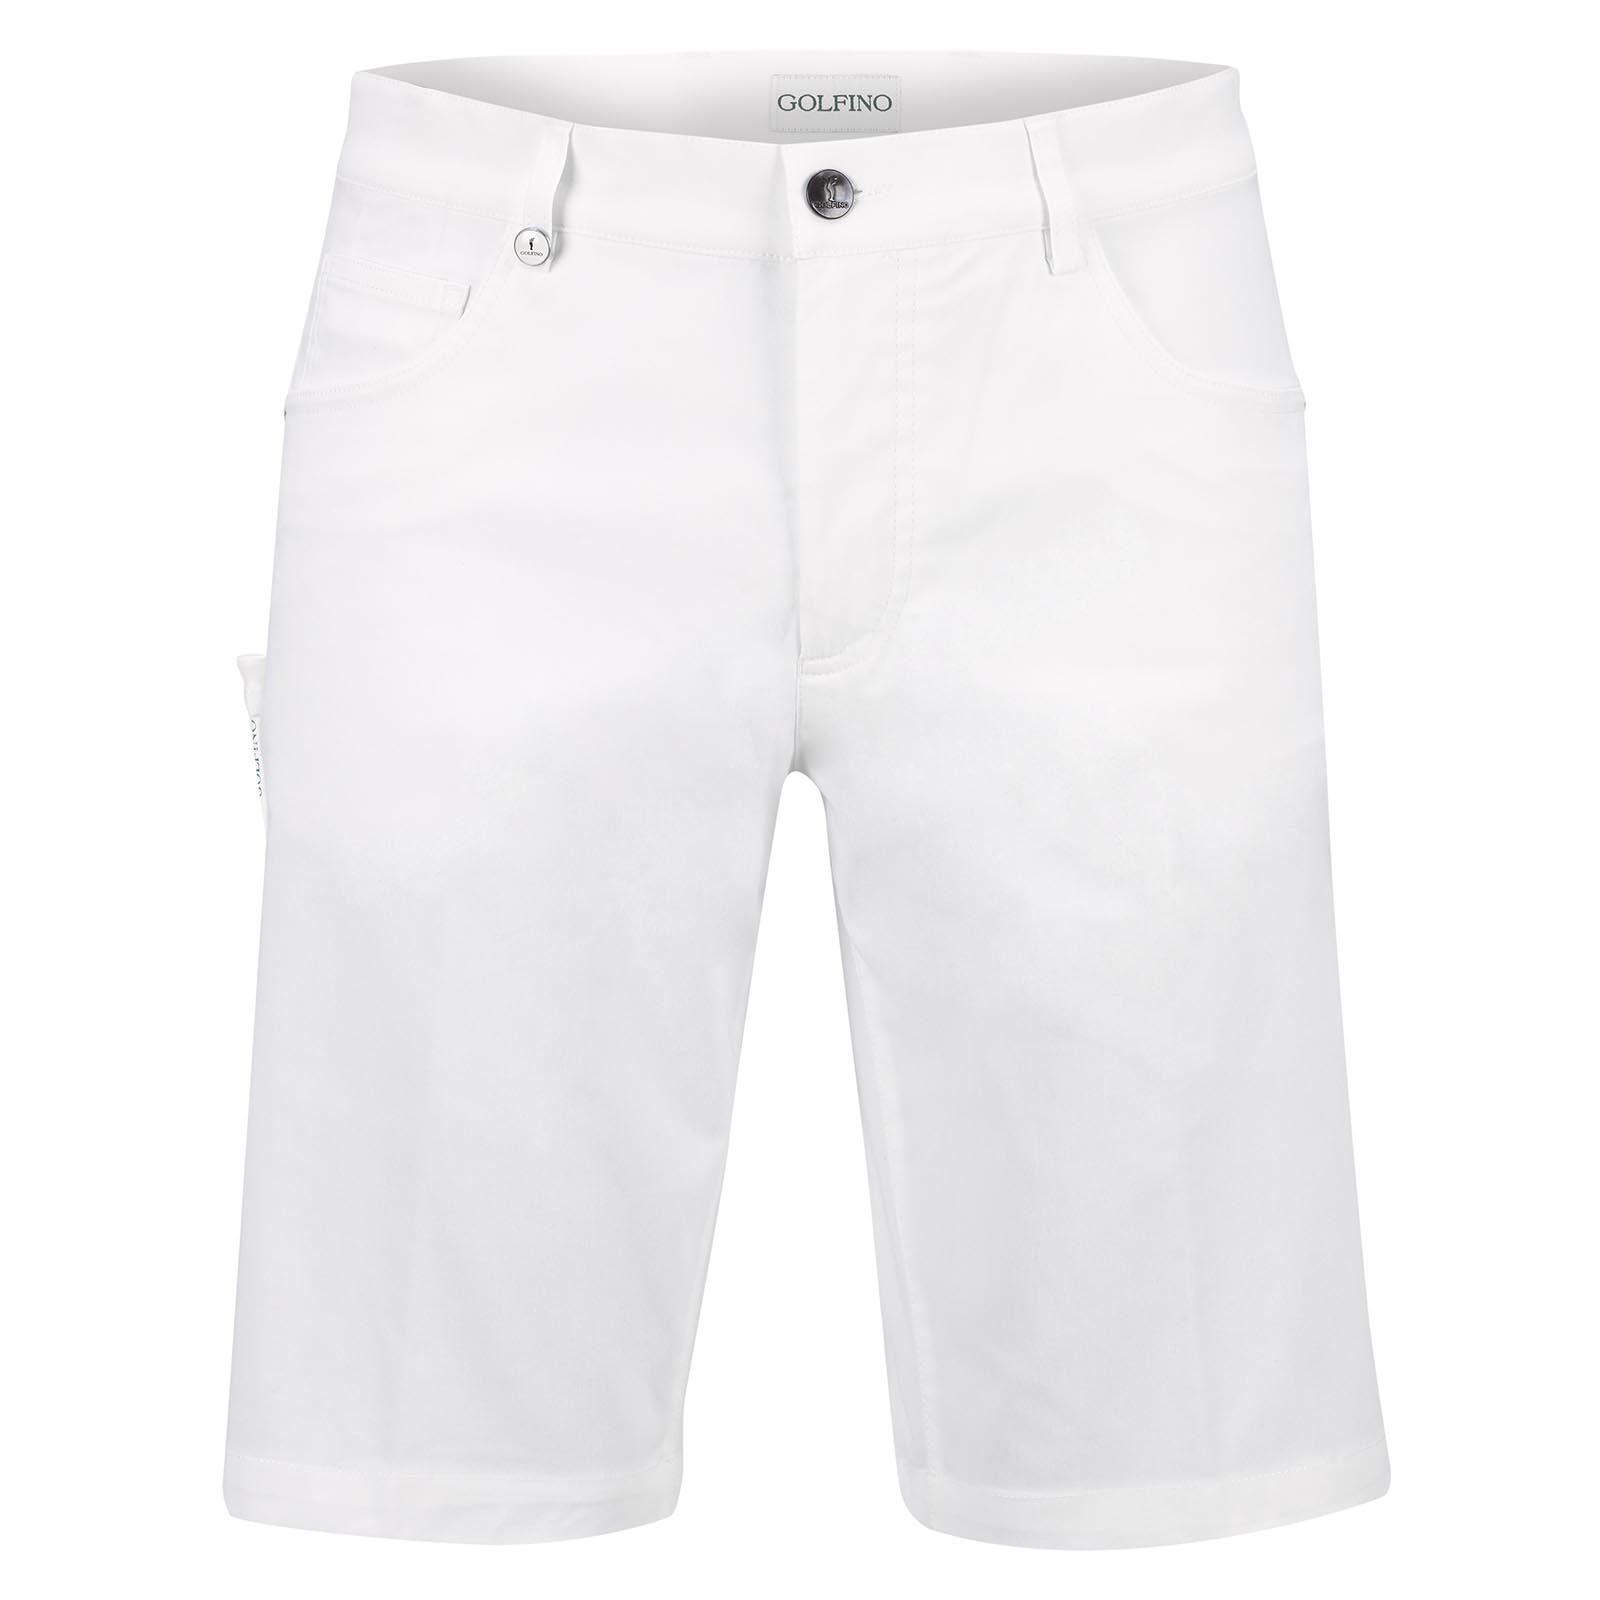 Herren Slim Fit Golf Funktions-Bermuda